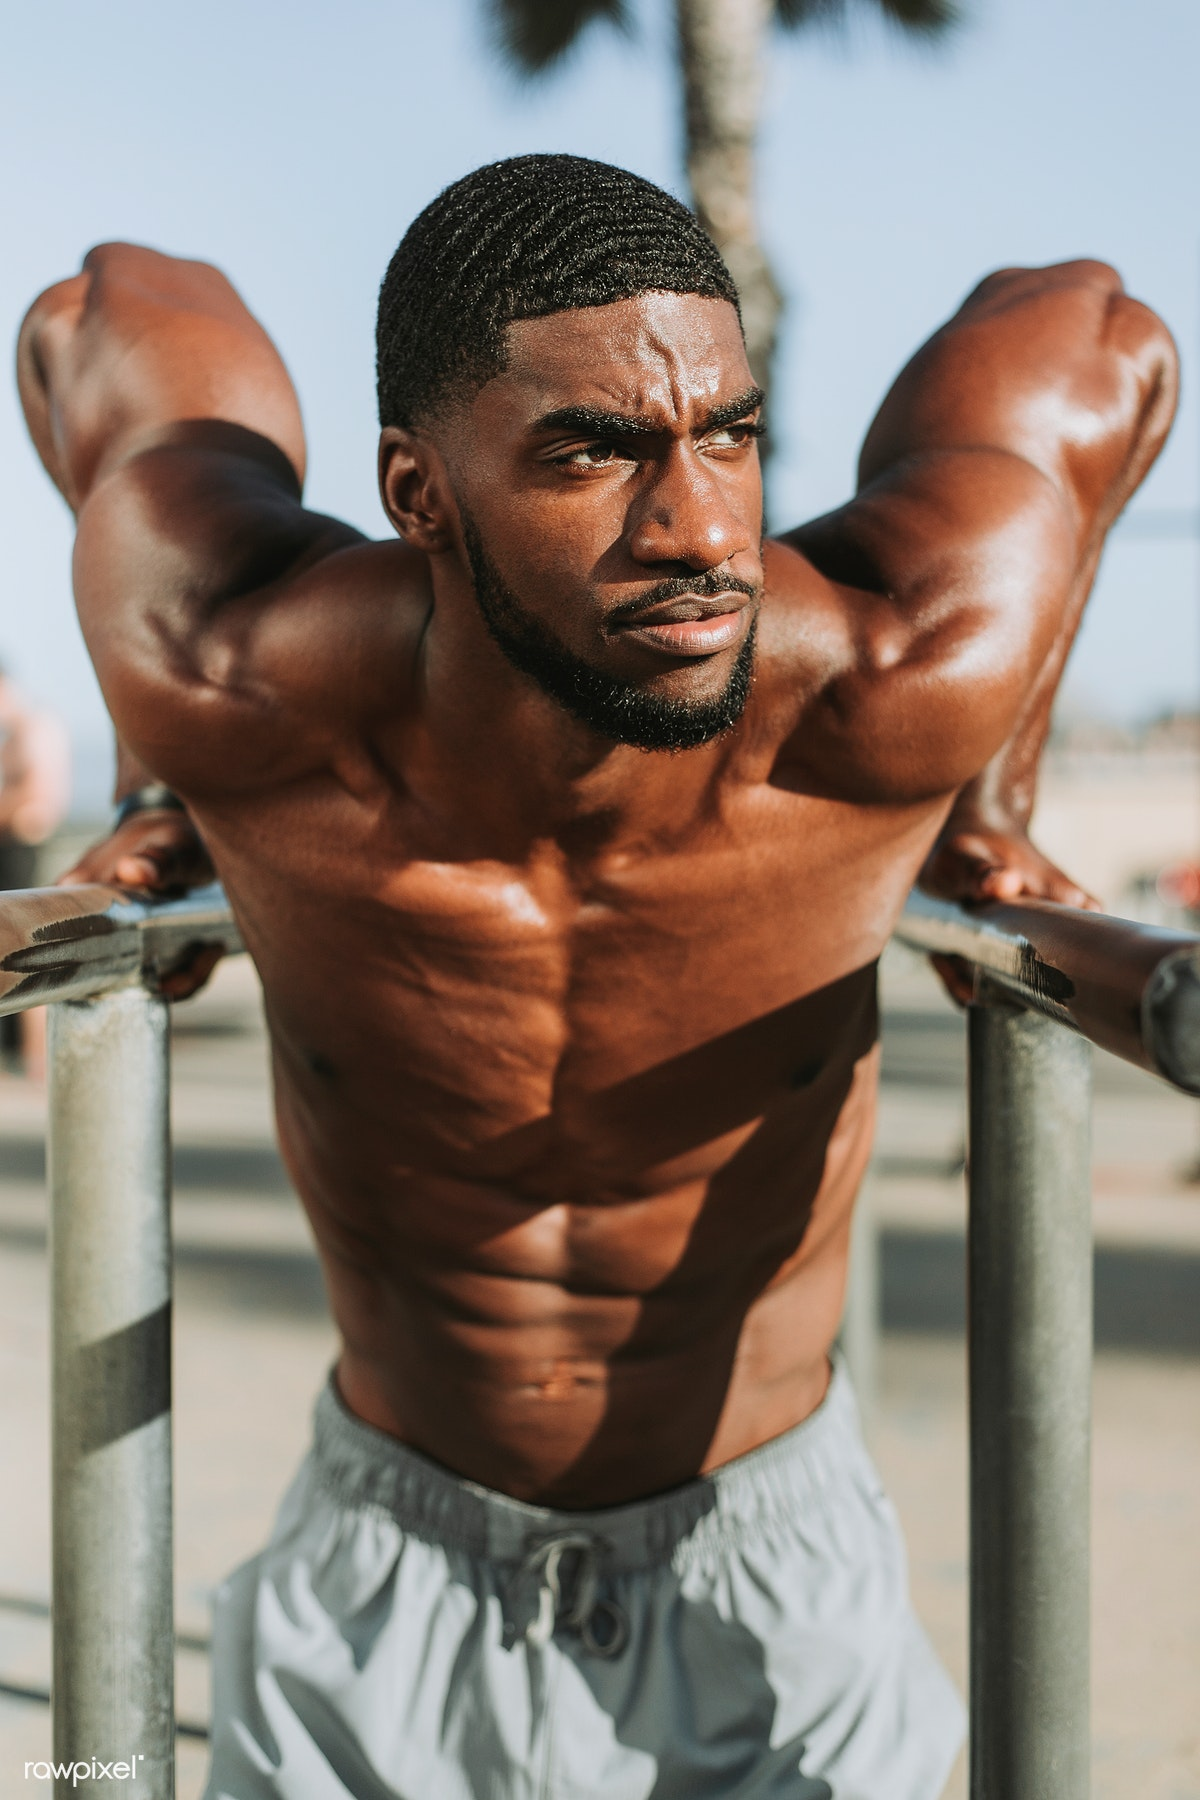 56c7978099 Fit black man working out   Royalty free stock photo - 474039